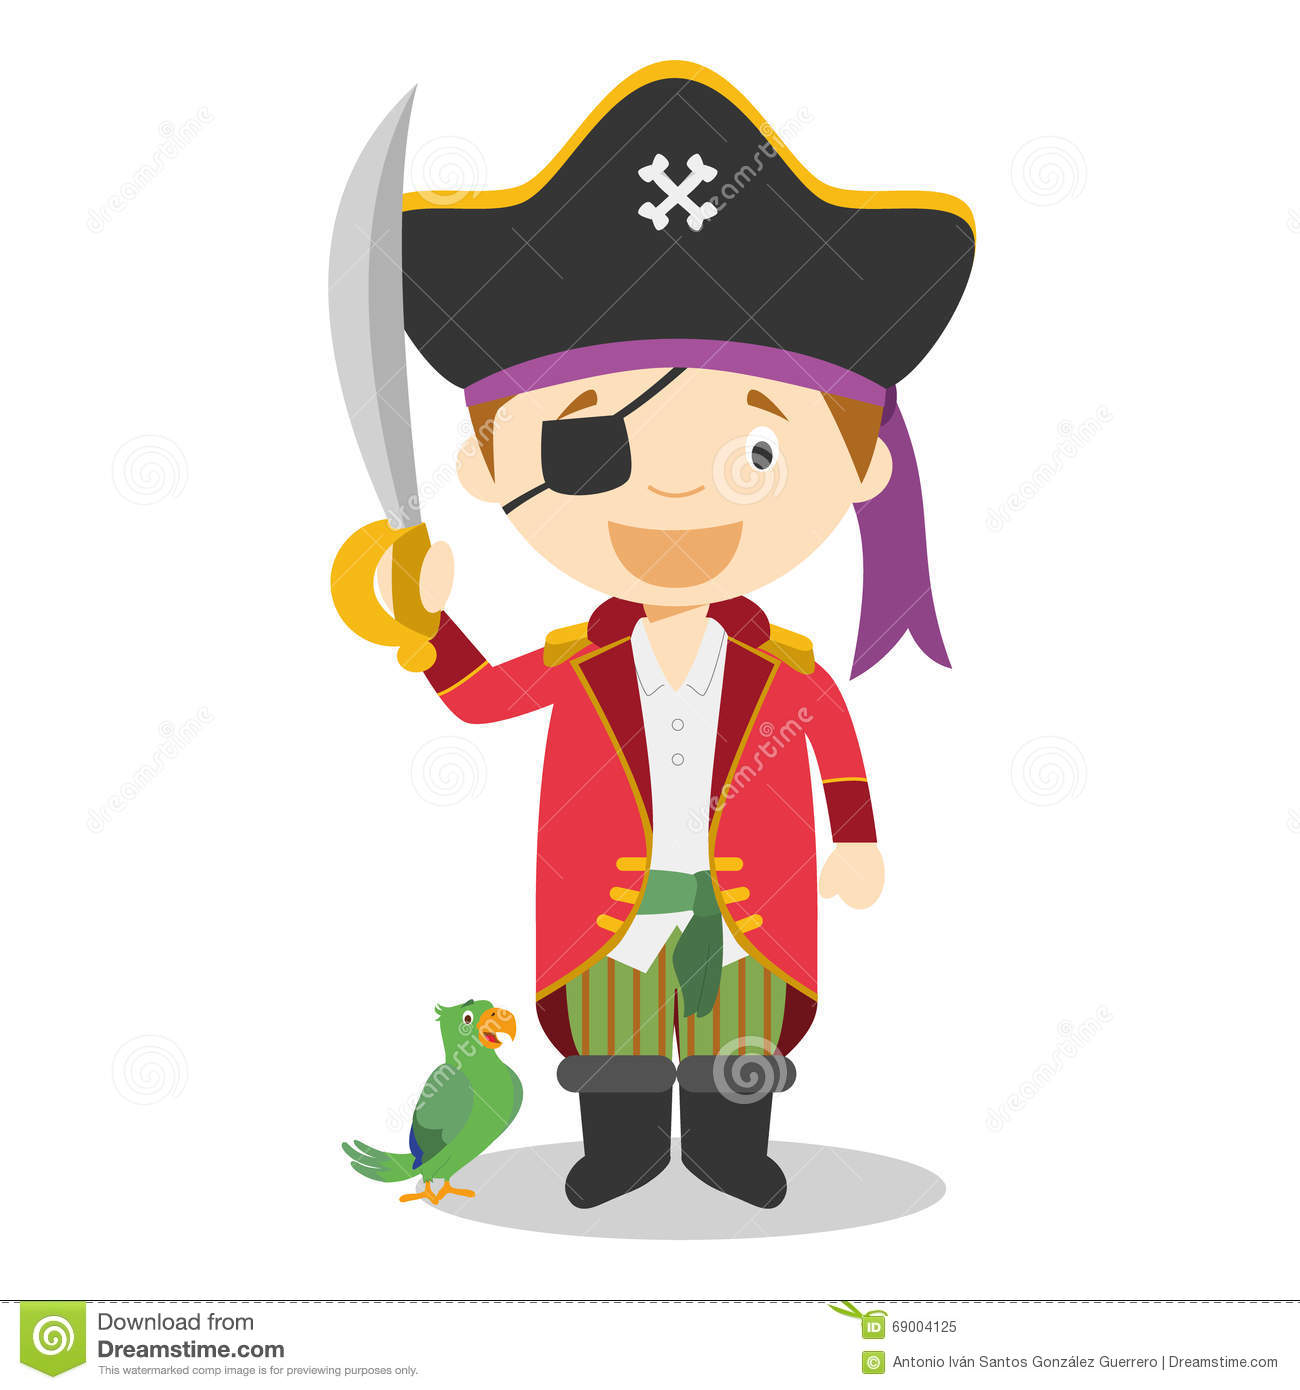 Cute Cartoon Vector Illustration Of A Pirate Stock Vector ...